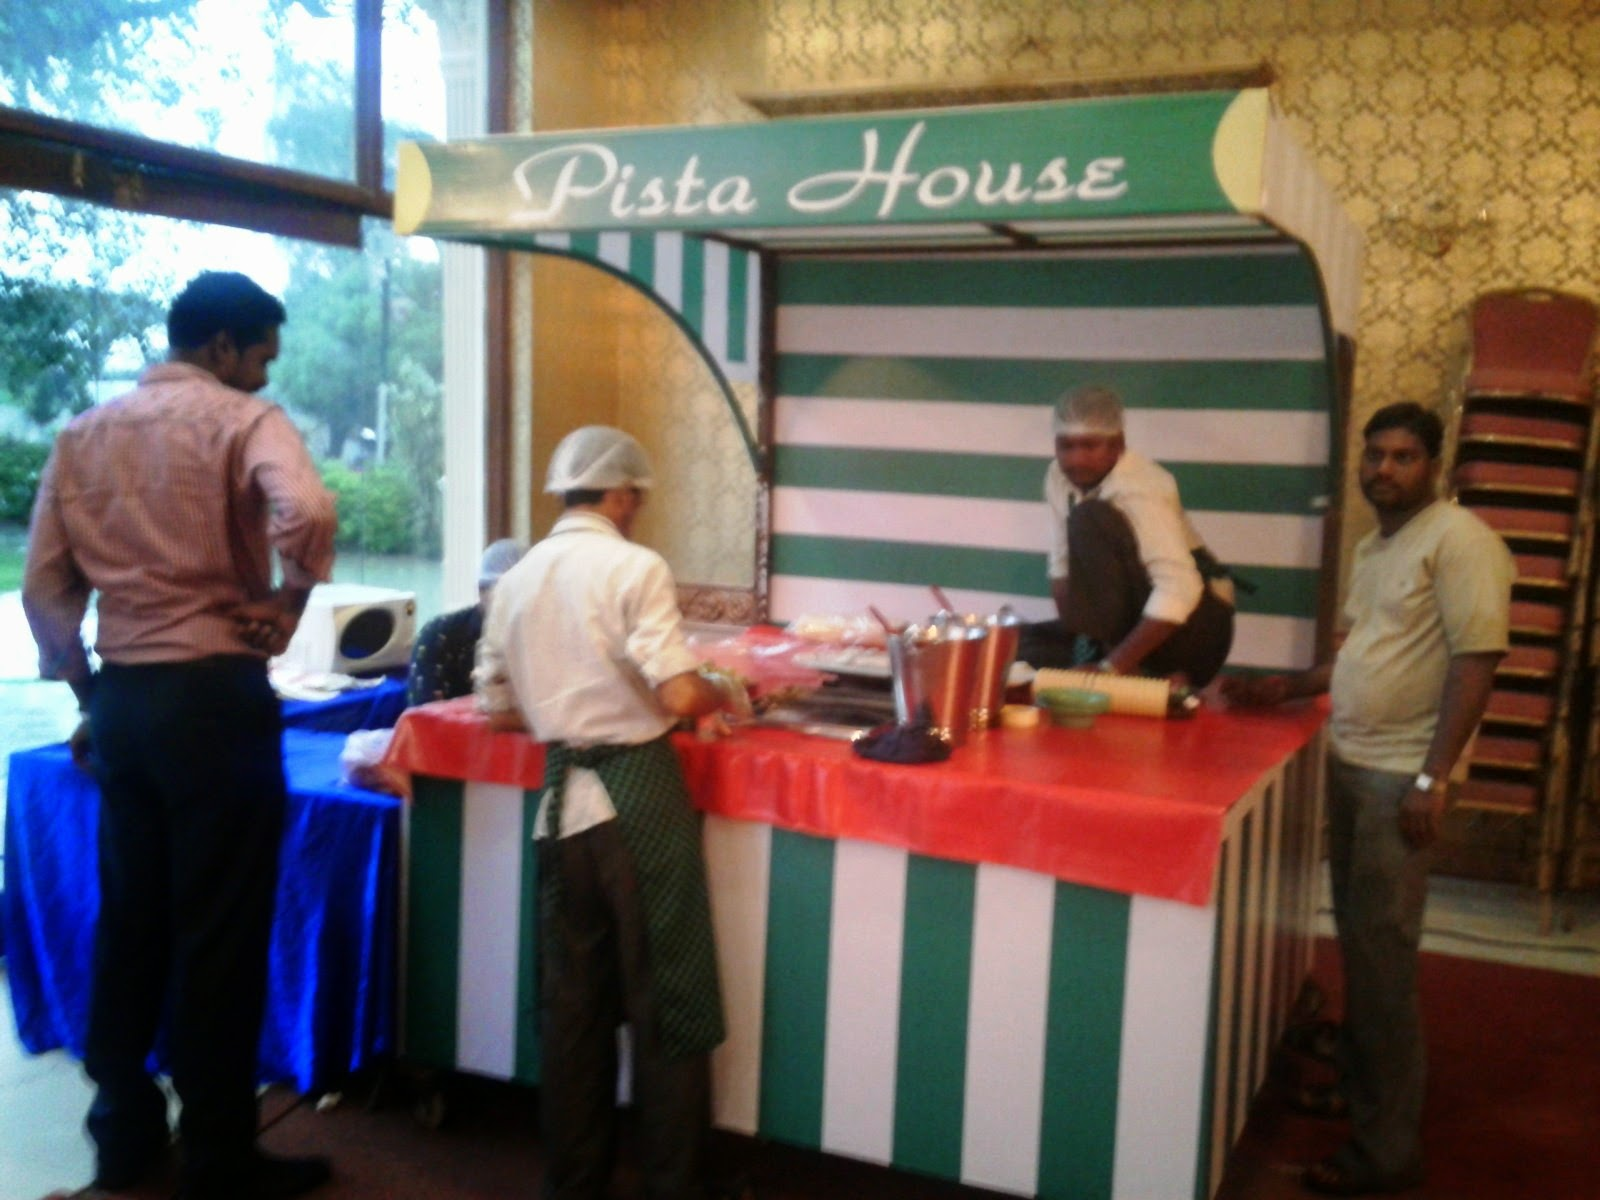 Pista House haleem counter